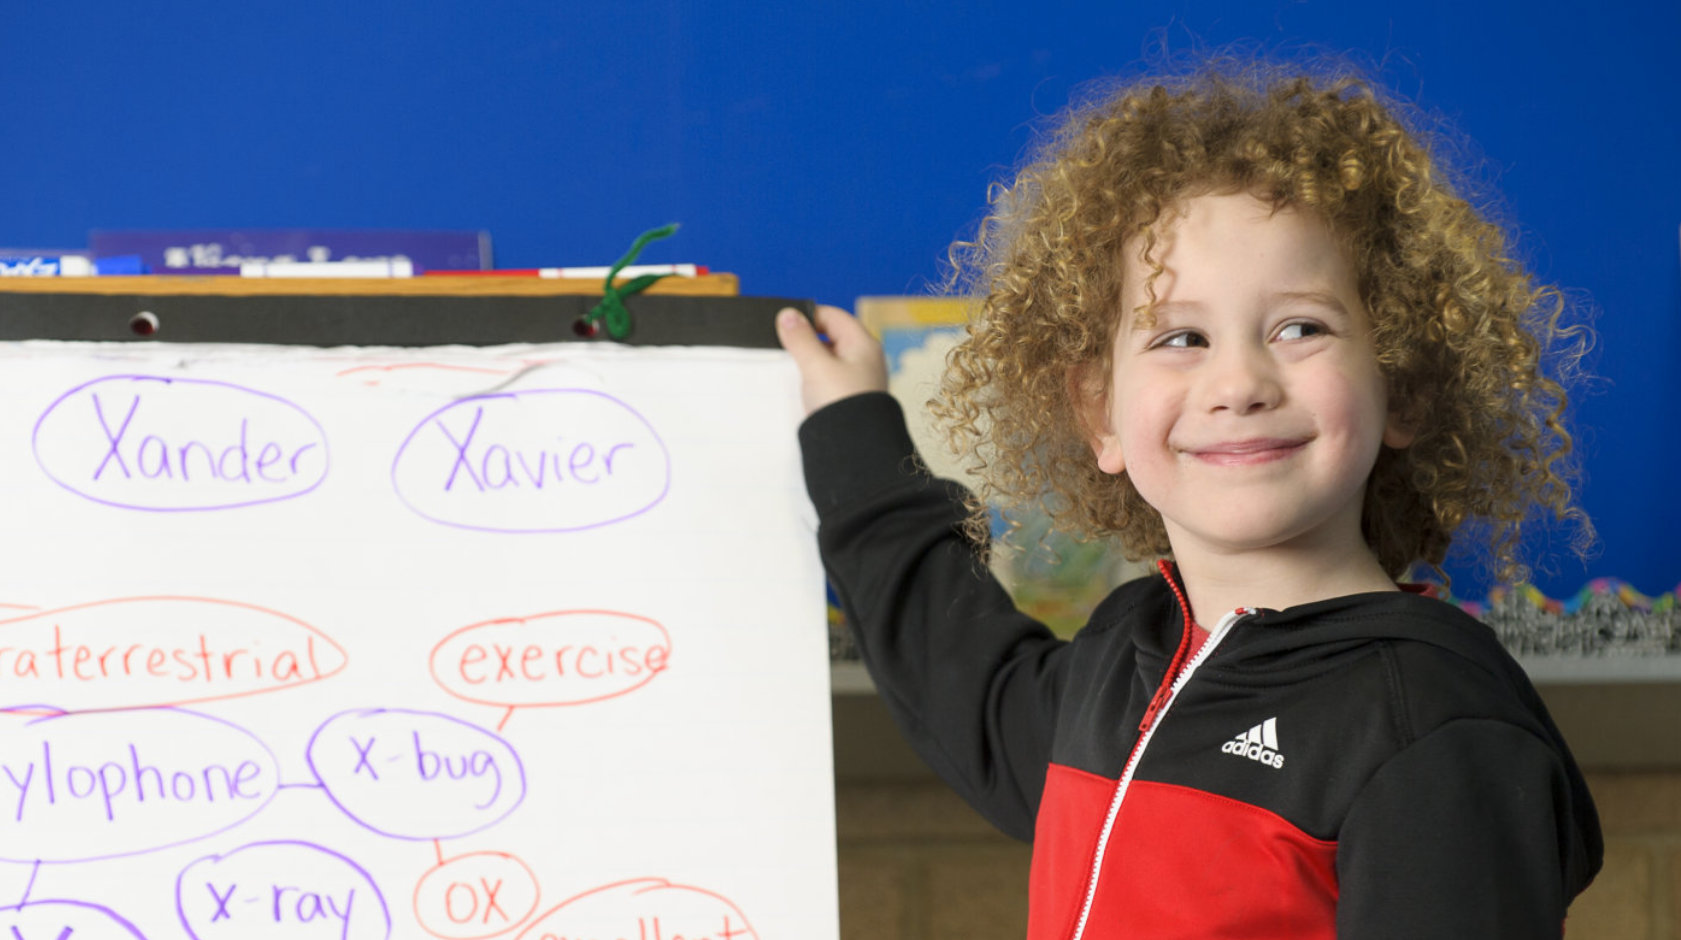 boy with curly hair smiling inside the room